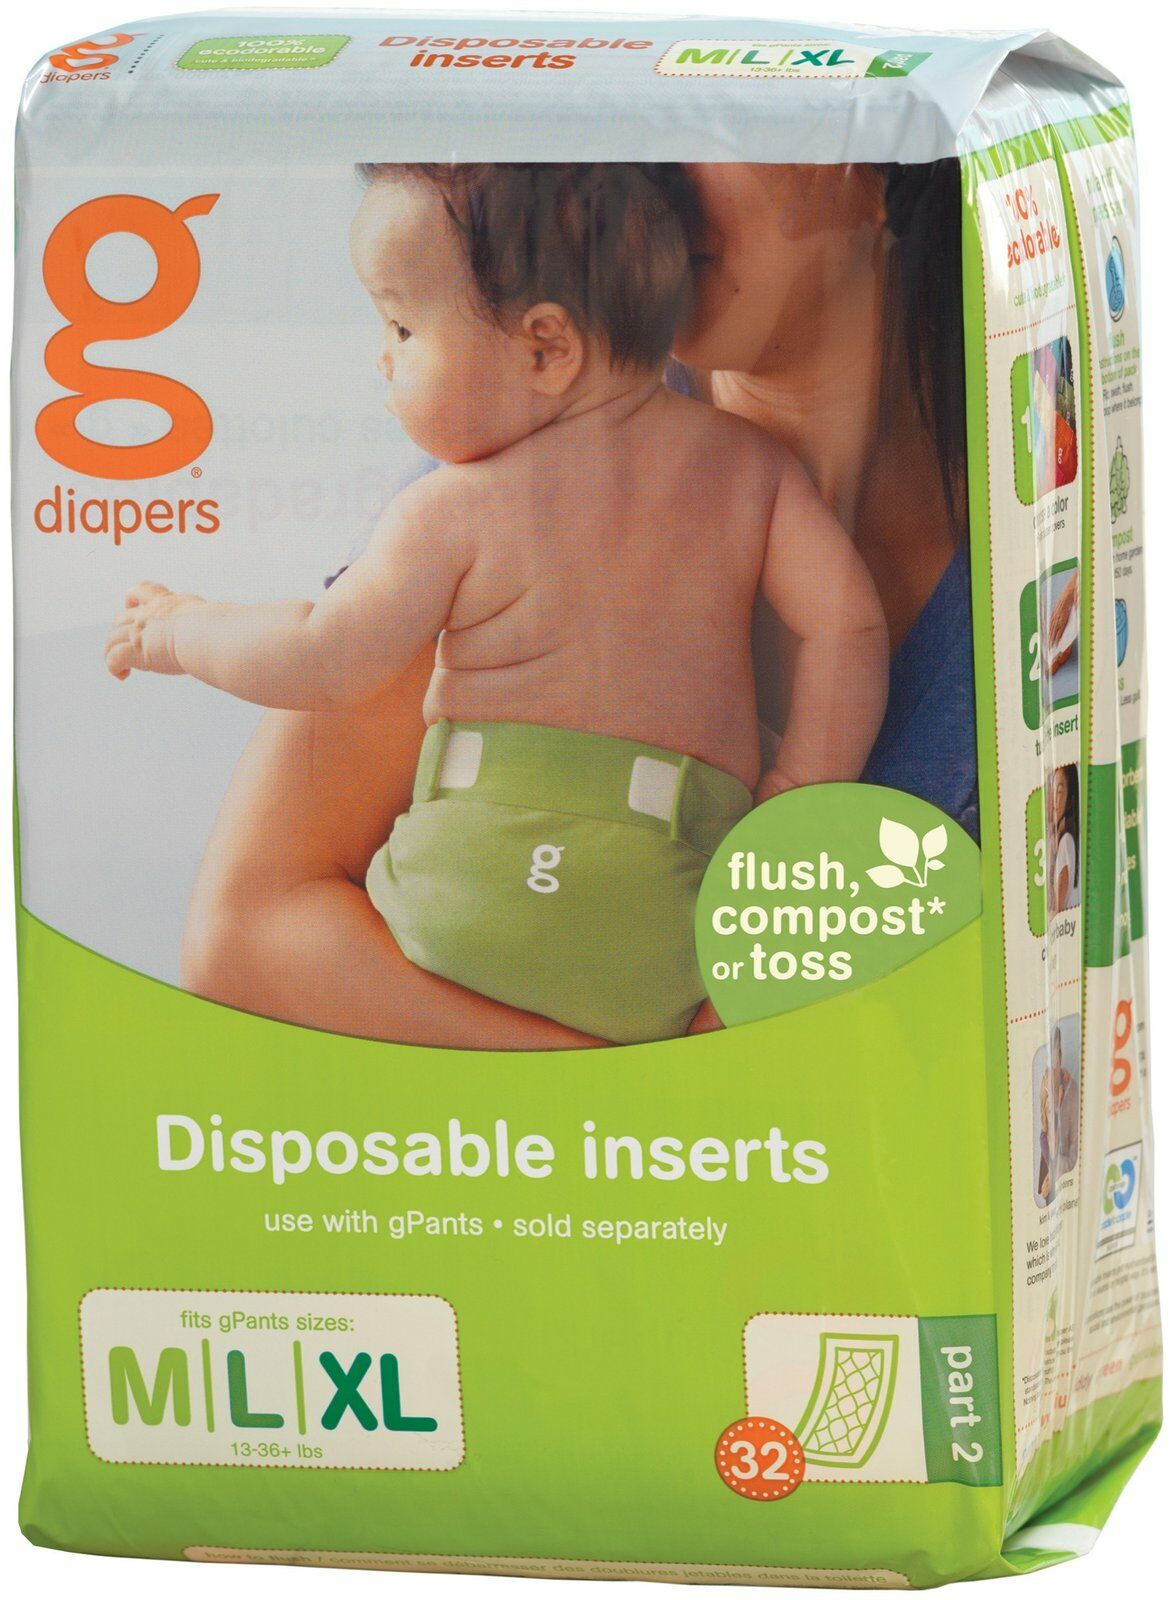 Choosing the Correct Size Huggies Disposable Diapers Buying Guide ...